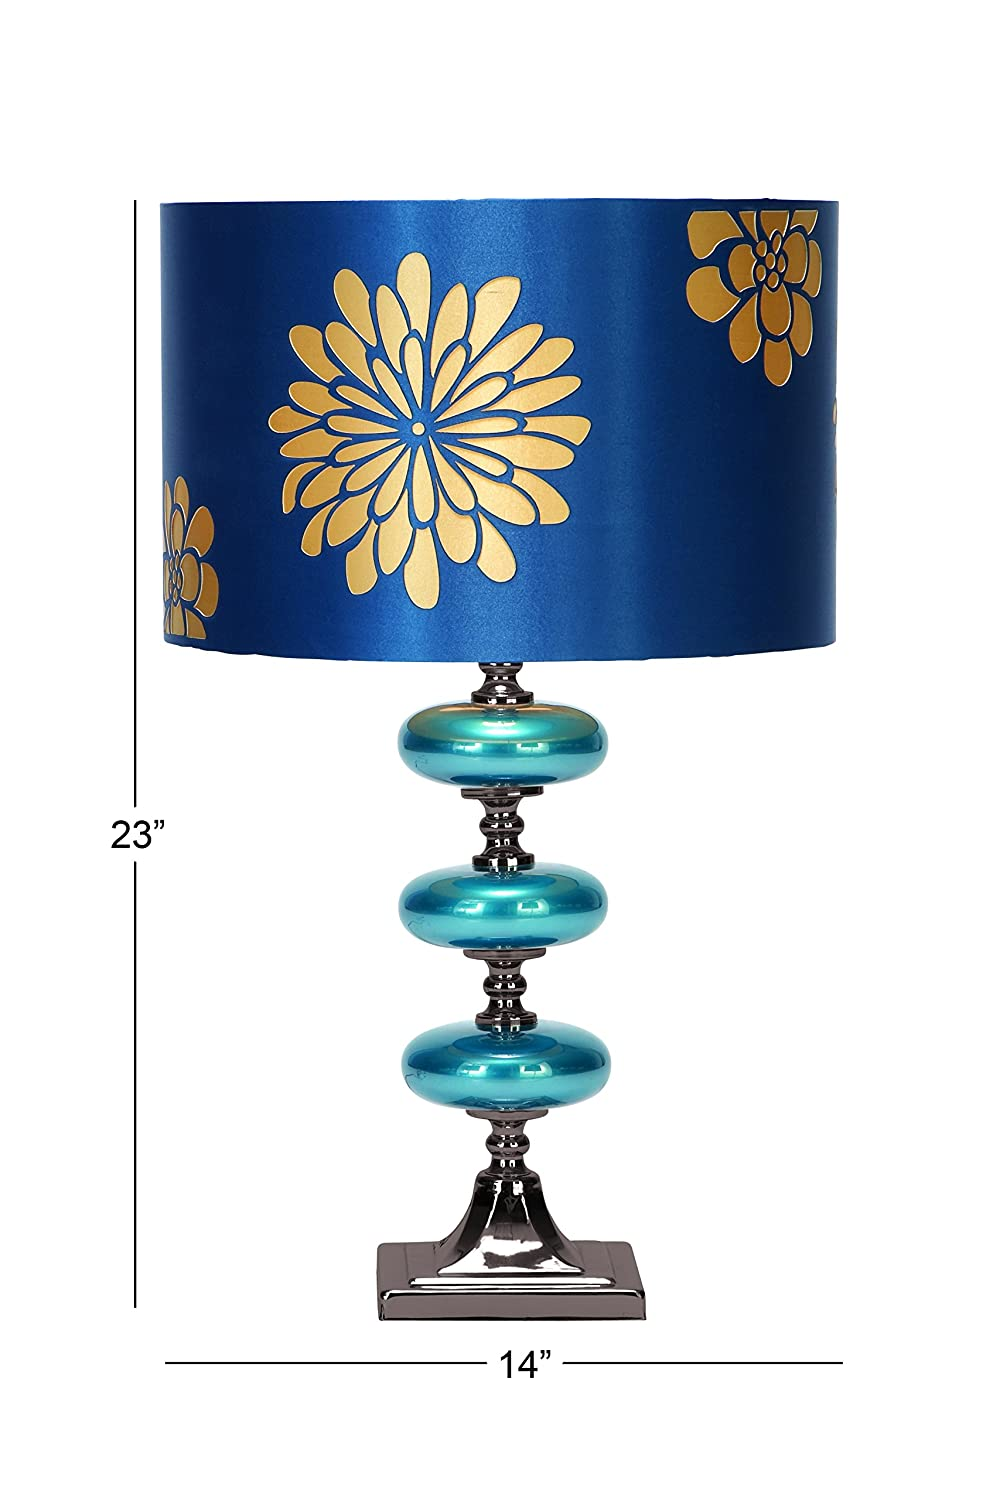 Deco 79 Metal Glass Table Lamp 23 Inch Blue Household Lamp Sets